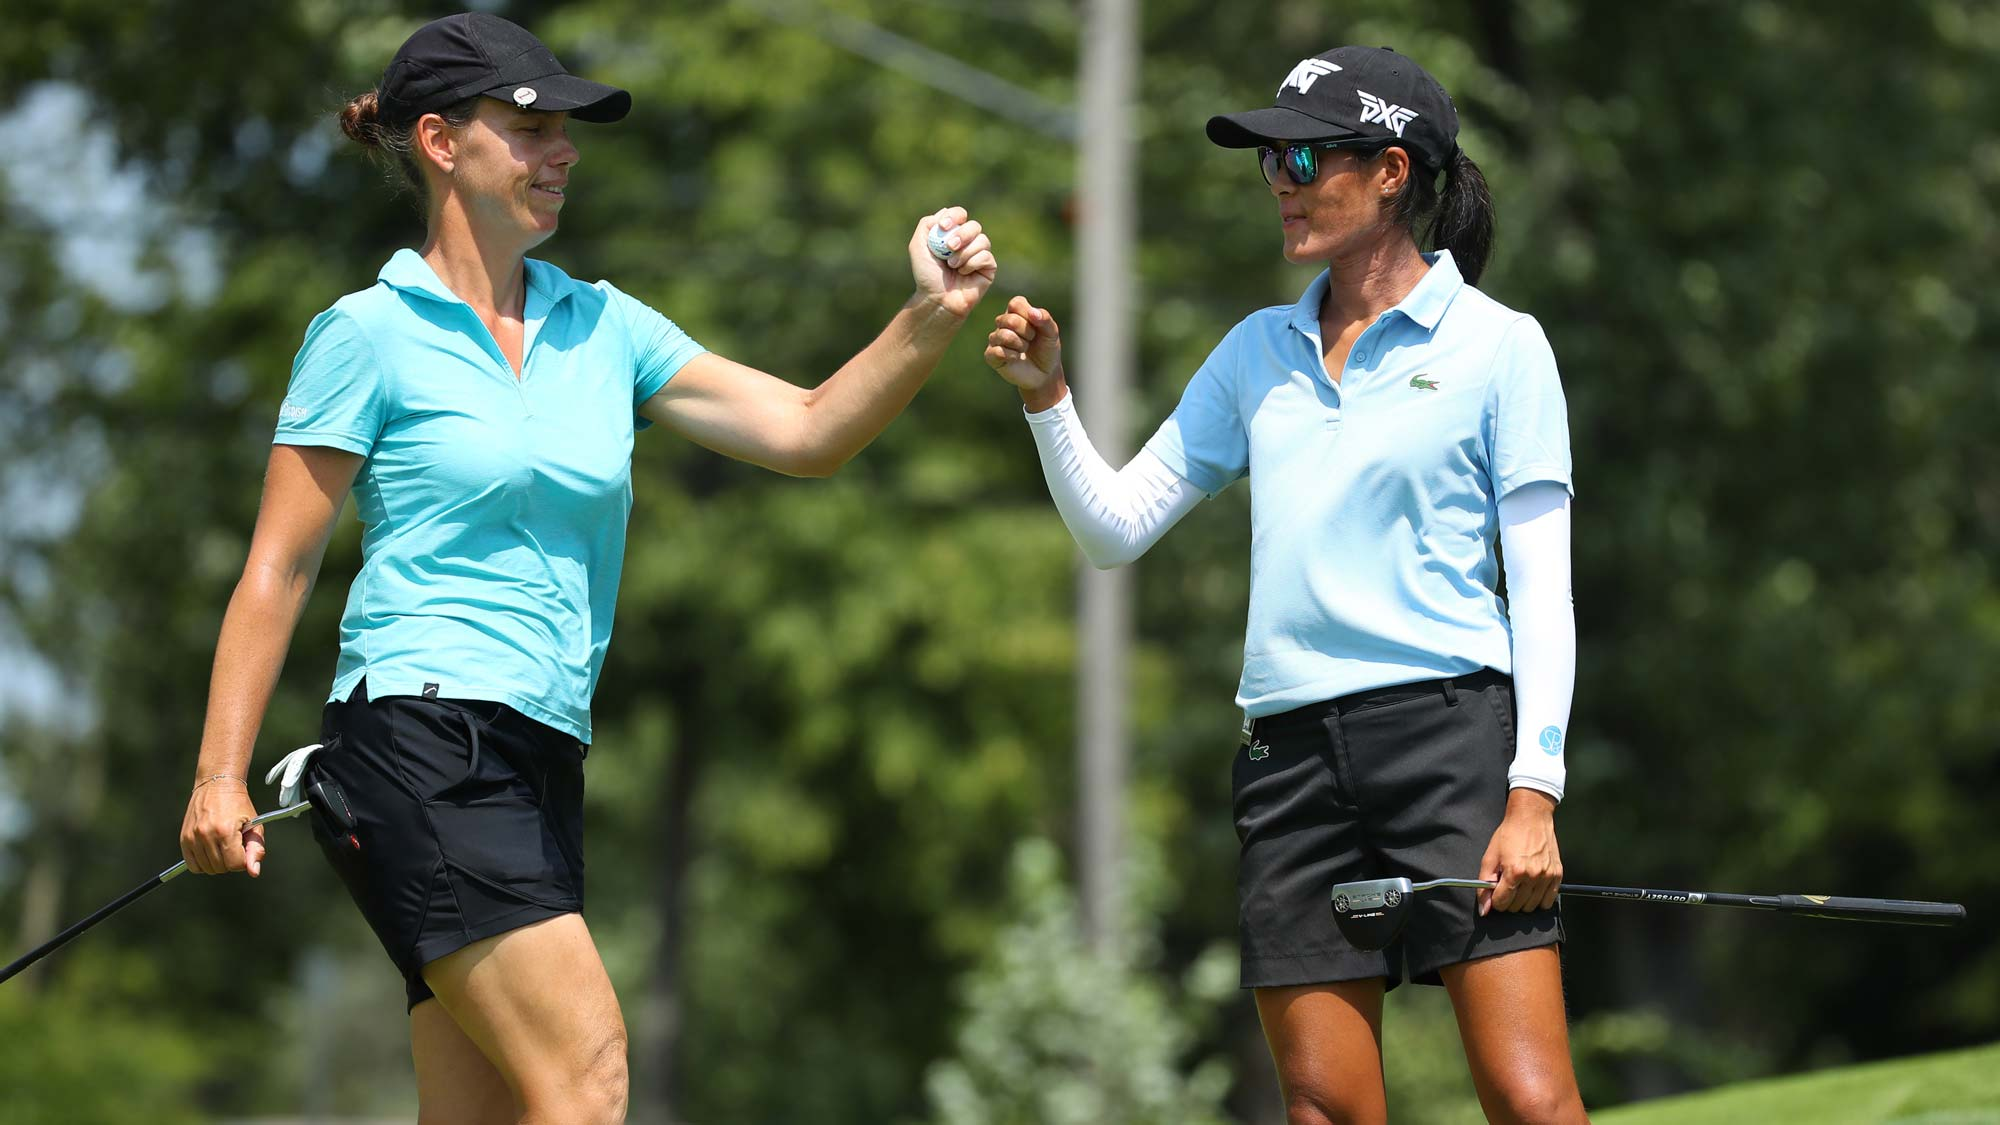 Teammates Celine Boutier (R) and Karine Icher of Italy celebrate a birdie on the sixth green during round three of the Dow Great Lakes Bay Invitational